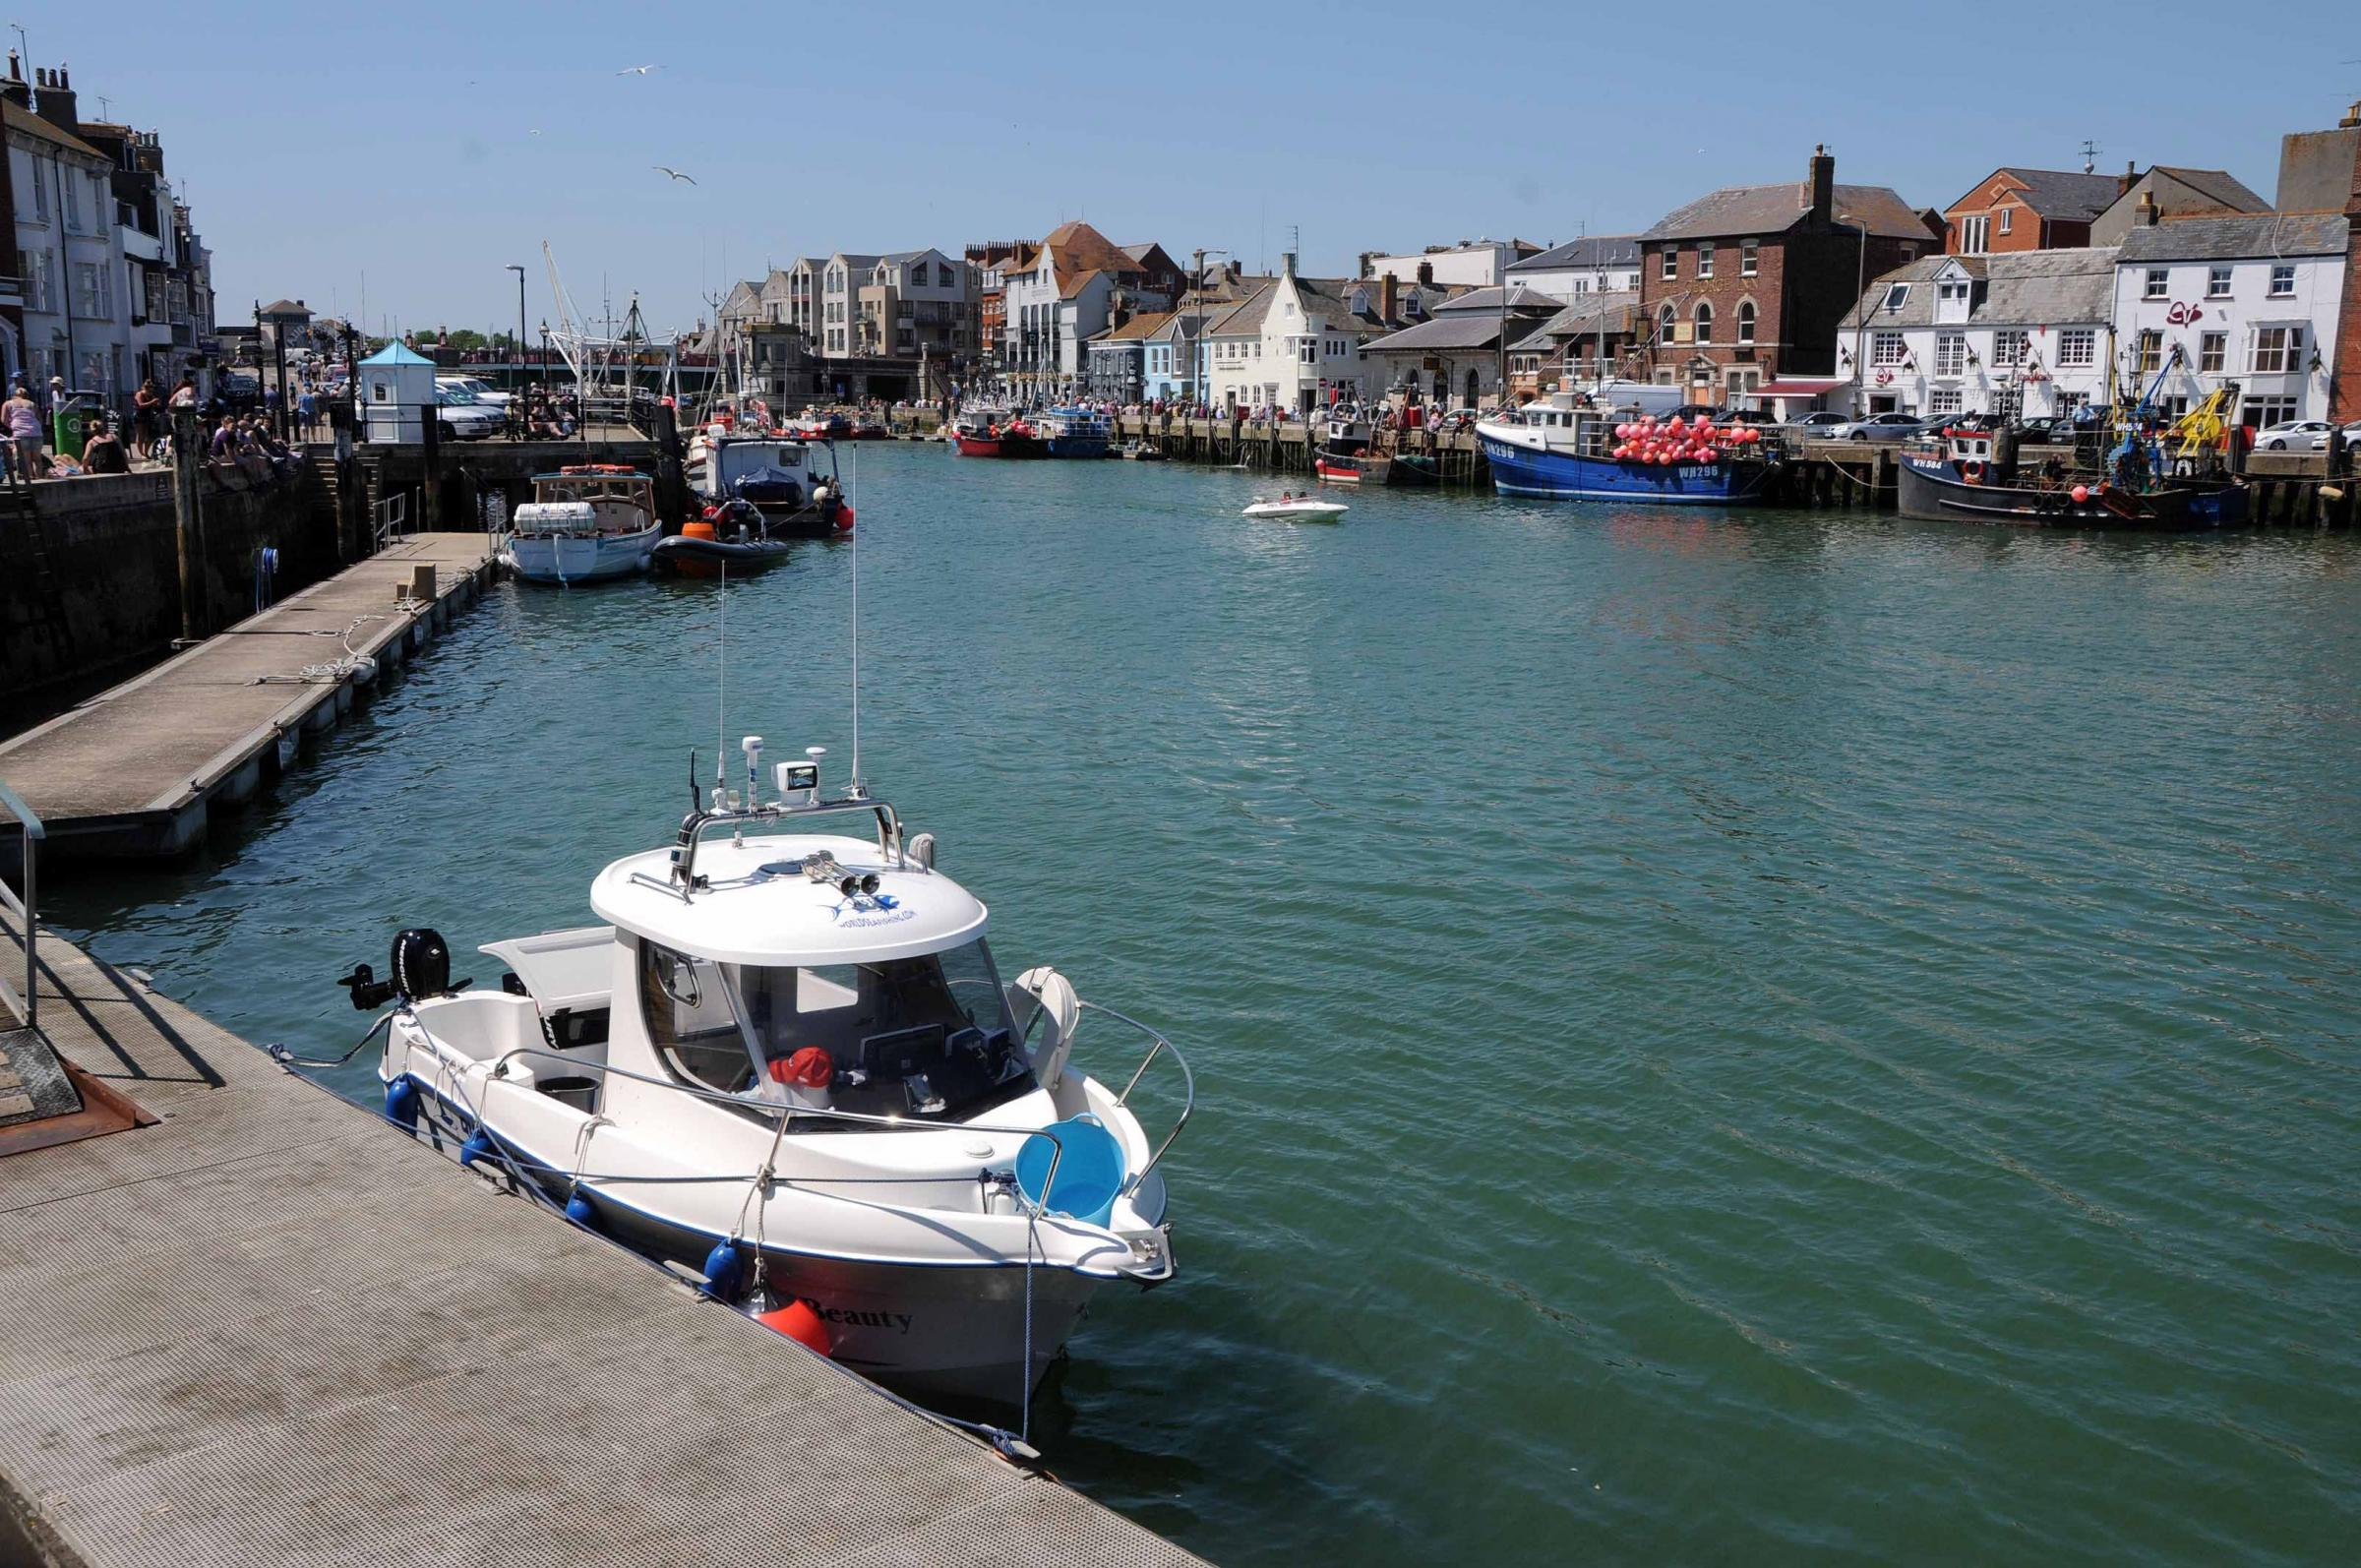 Frozen fees make Weymouth harbour 'one of the cheapest' on south coast